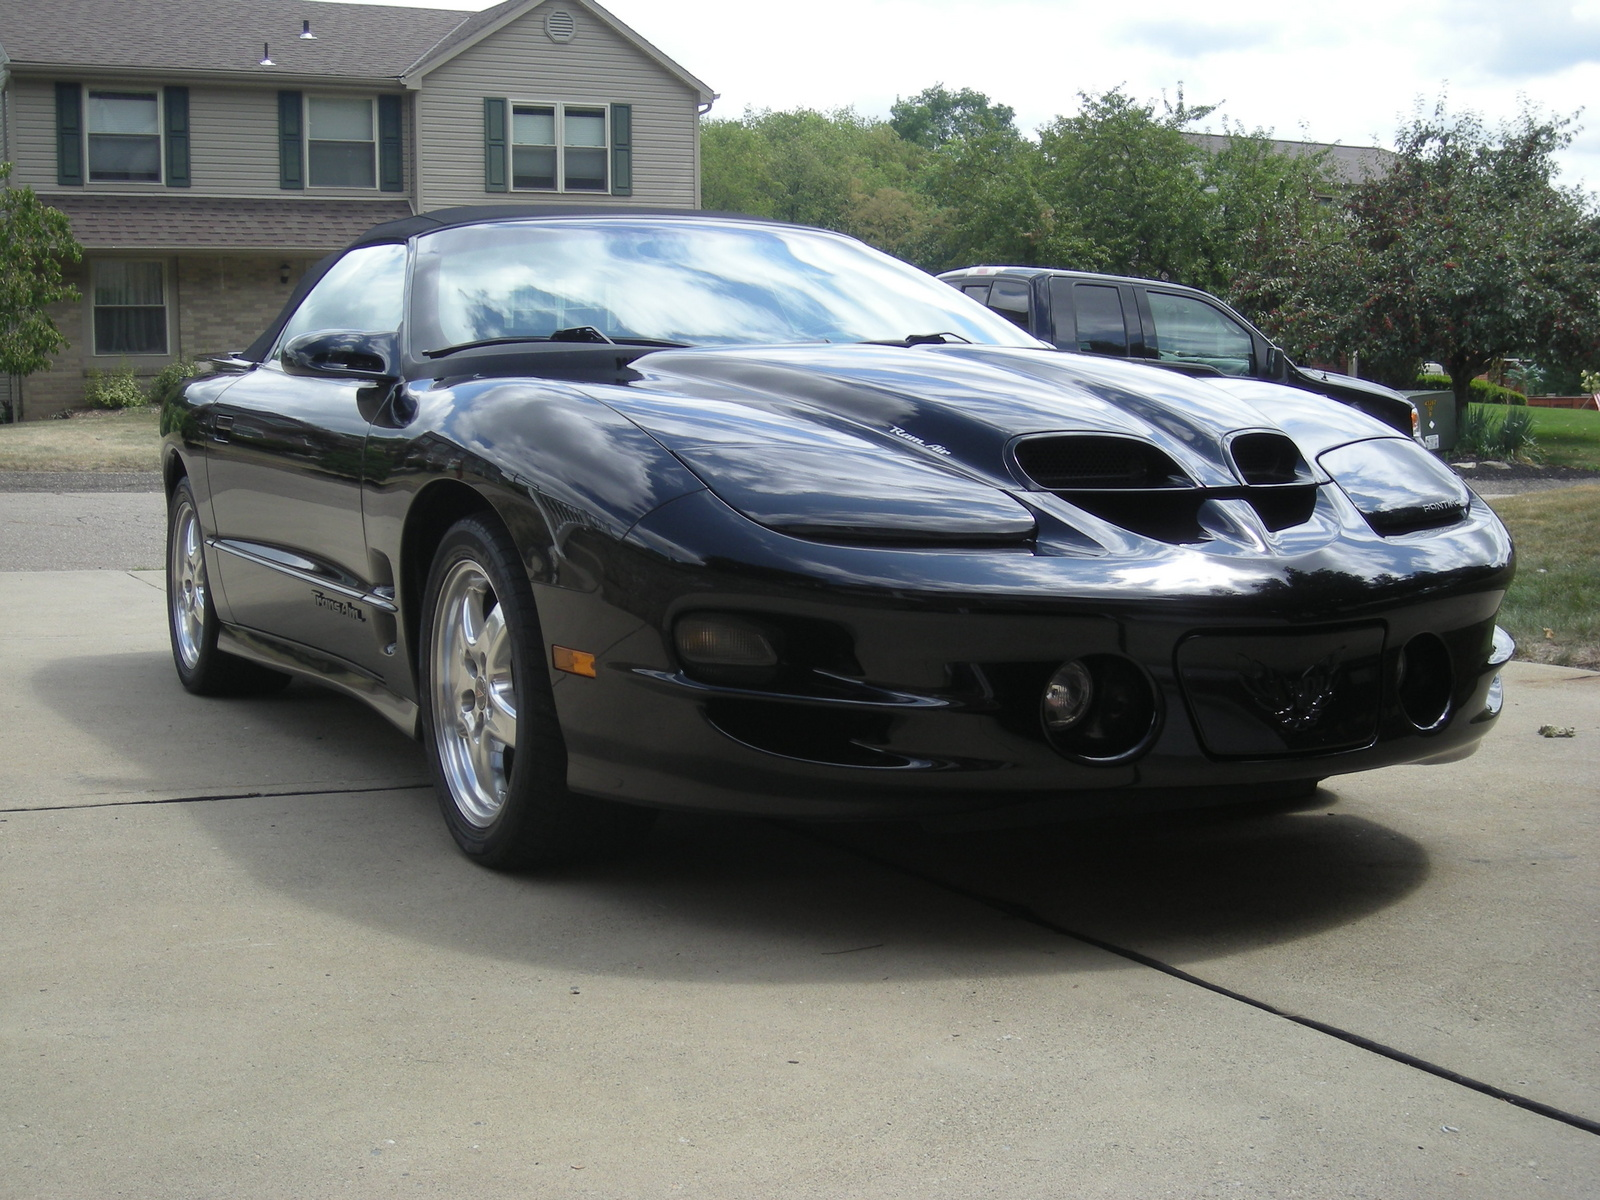 2002 pontiac firebird trans am for sale cargurus. Black Bedroom Furniture Sets. Home Design Ideas